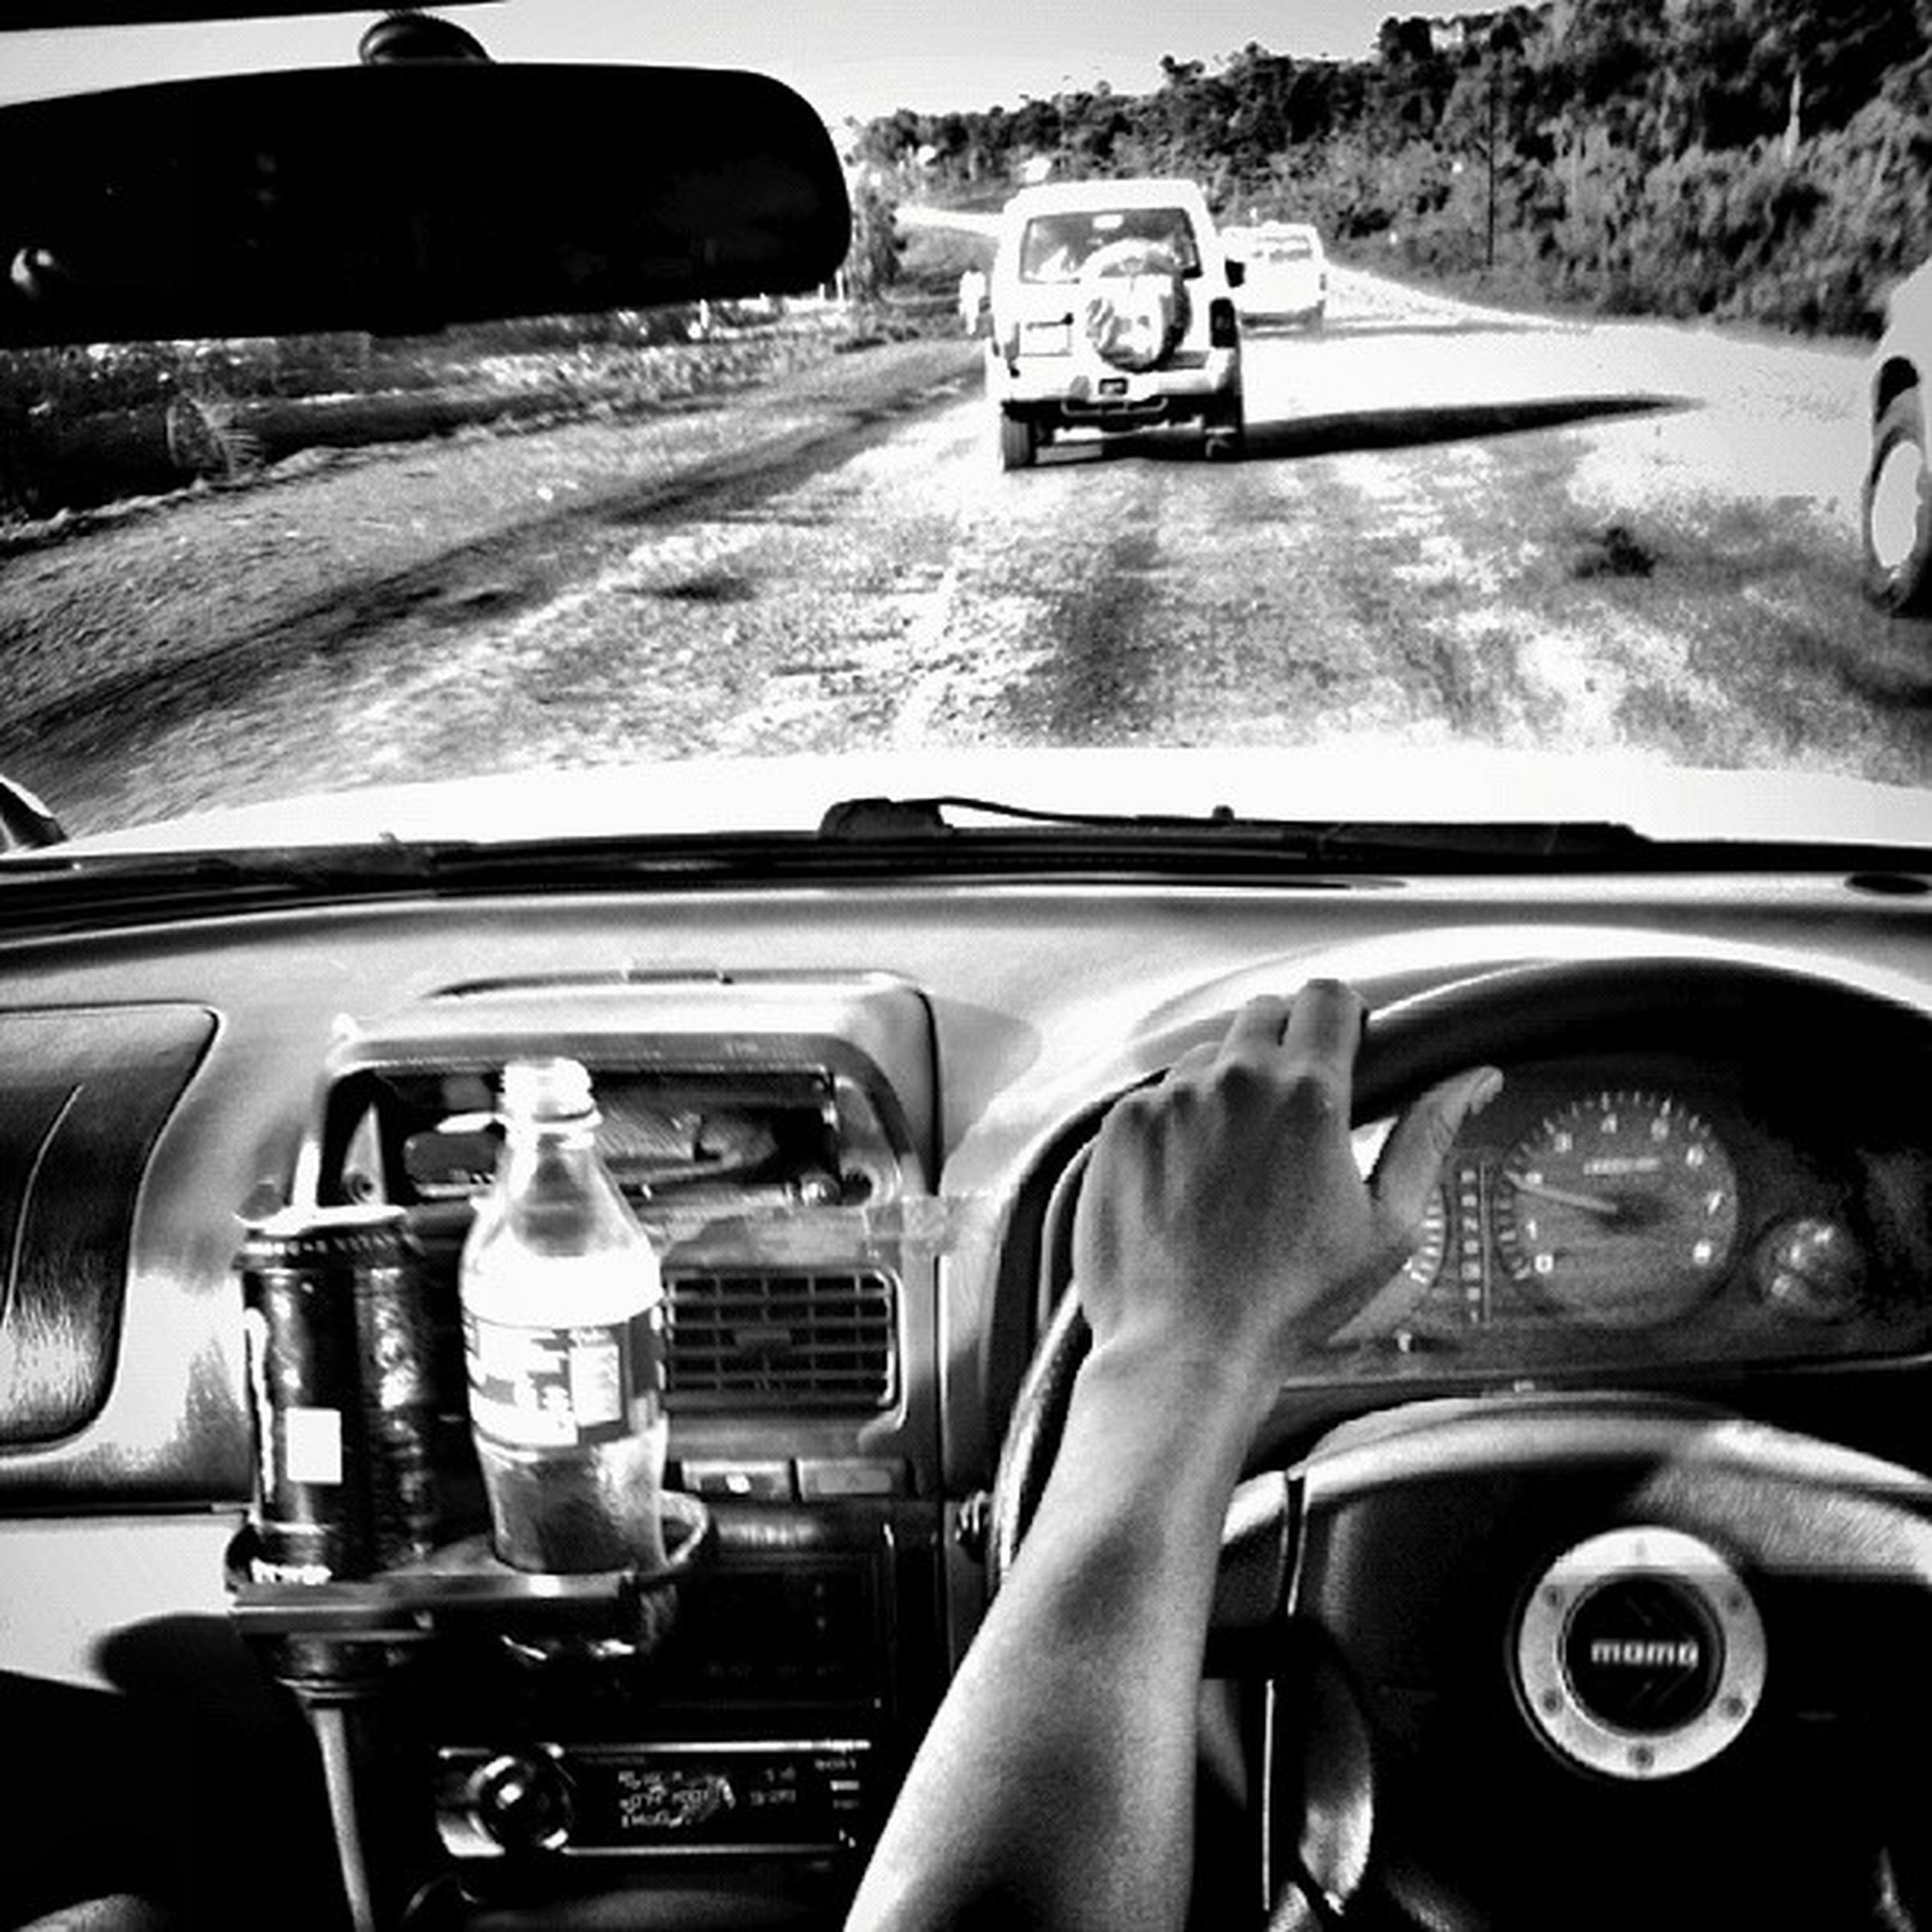 transportation, land vehicle, mode of transport, car, travel, part of, windshield, vehicle interior, car interior, steering wheel, cropped, on the move, side-view mirror, dashboard, vintage car, street, stationary, road, one person, headlight